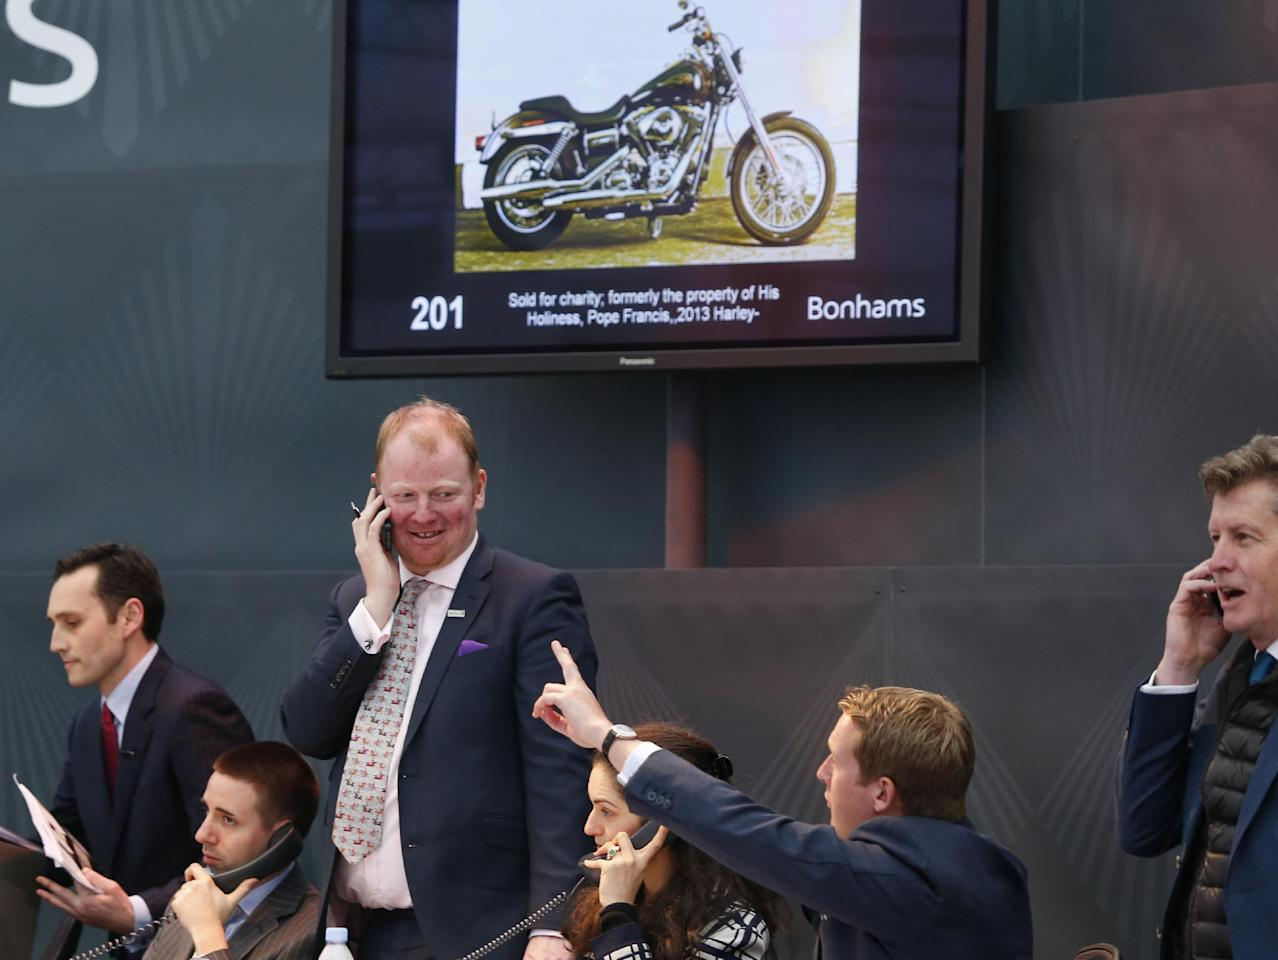 Auction officers on the phone during the auction of the 2013 Harley Davidson Super Glide Custom A 1,585cc which was donated to Pope Francis last year, in Paris, Thursday Feb. 6, 2014. Pope Francis' Harley-Davidson is hitting the road after an unspecified European buyer agreed to pay 241,500 euros ($327,000) including taxes and fees for the motorcycle at a Paris auction to benefit charity. The Bonhams auction house said the telephone buyer agreed to pay far more than the expected pre-sale price of more than 12,000 euros ($16,000) at the auction at Paris' Grand Palais. (AP Photo/Jacques Brinon)